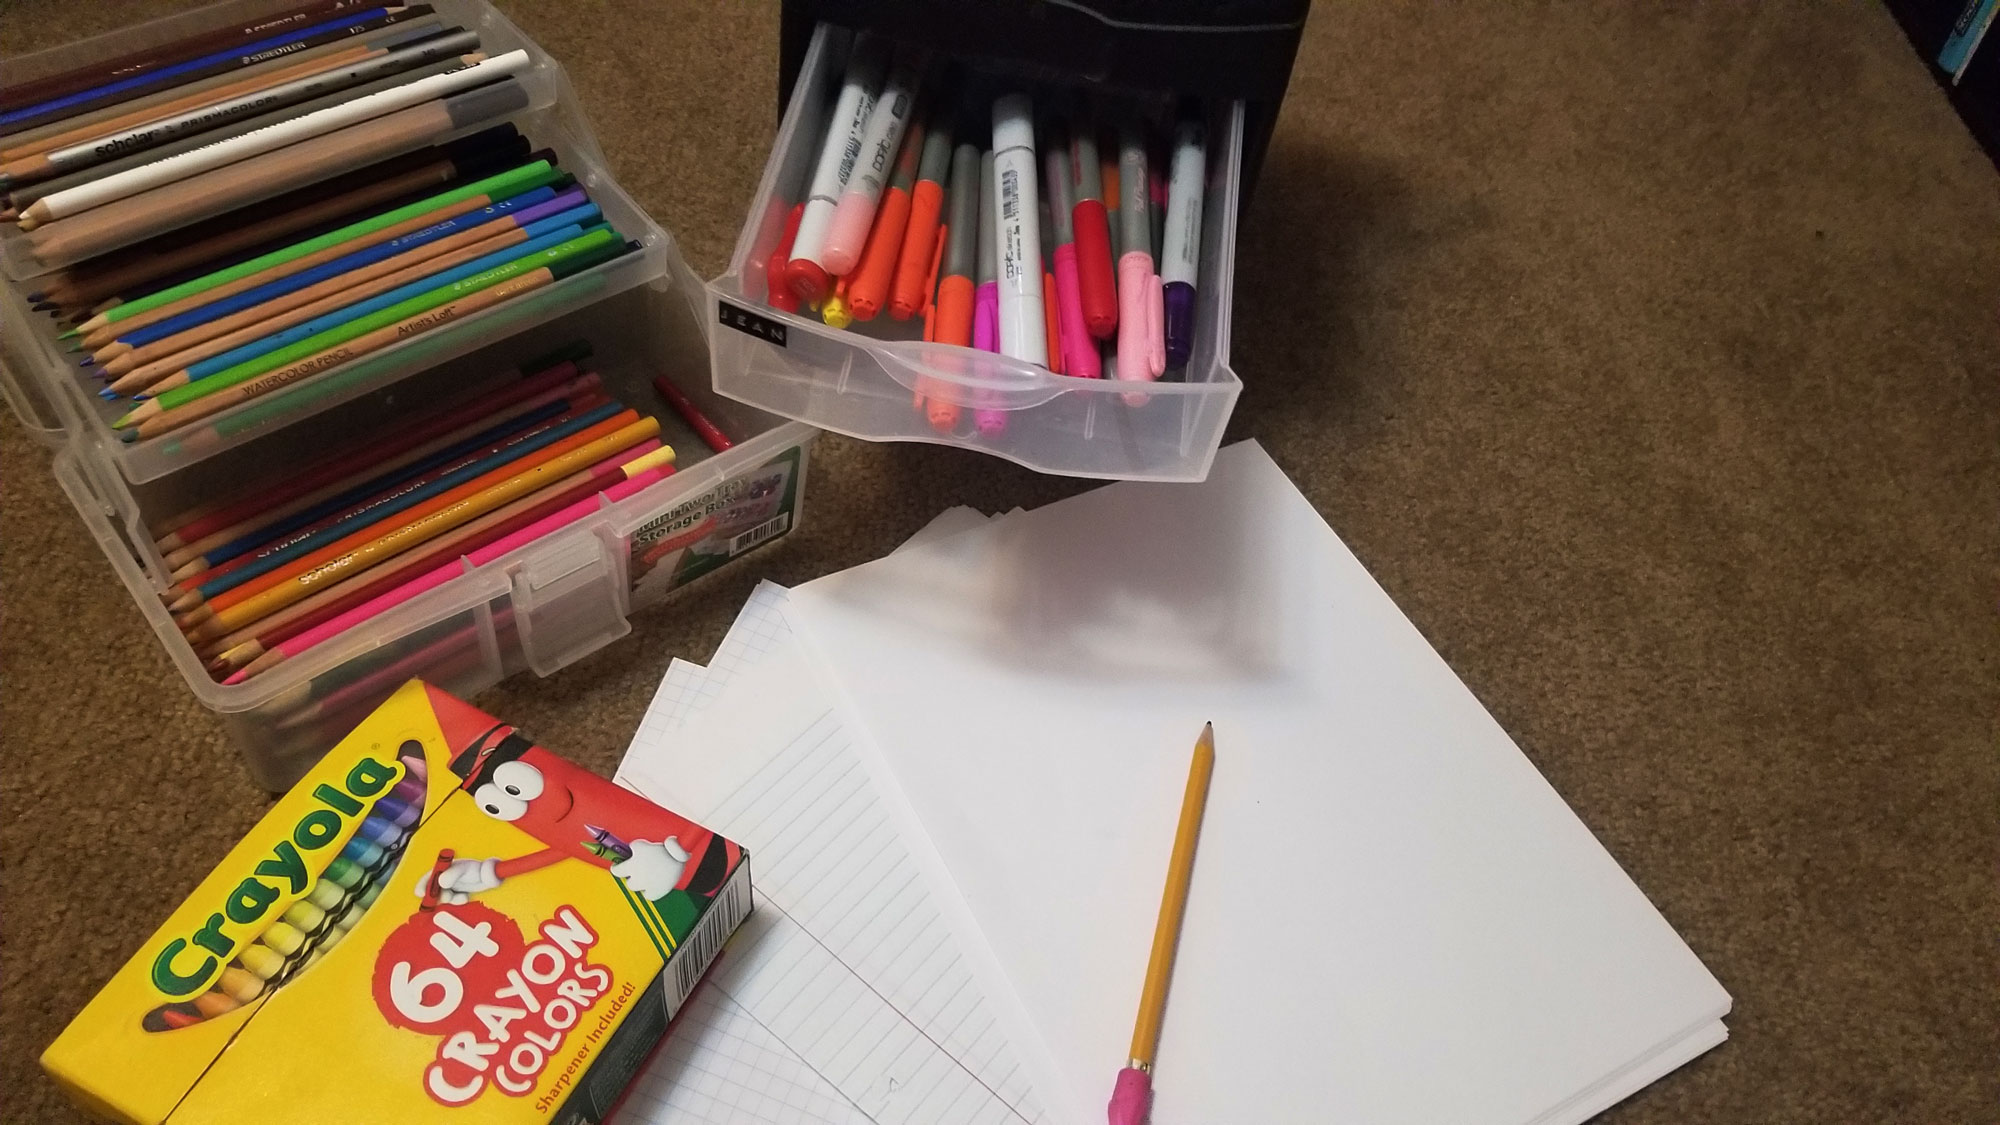 Paper, pencil and markers on display for an art project.